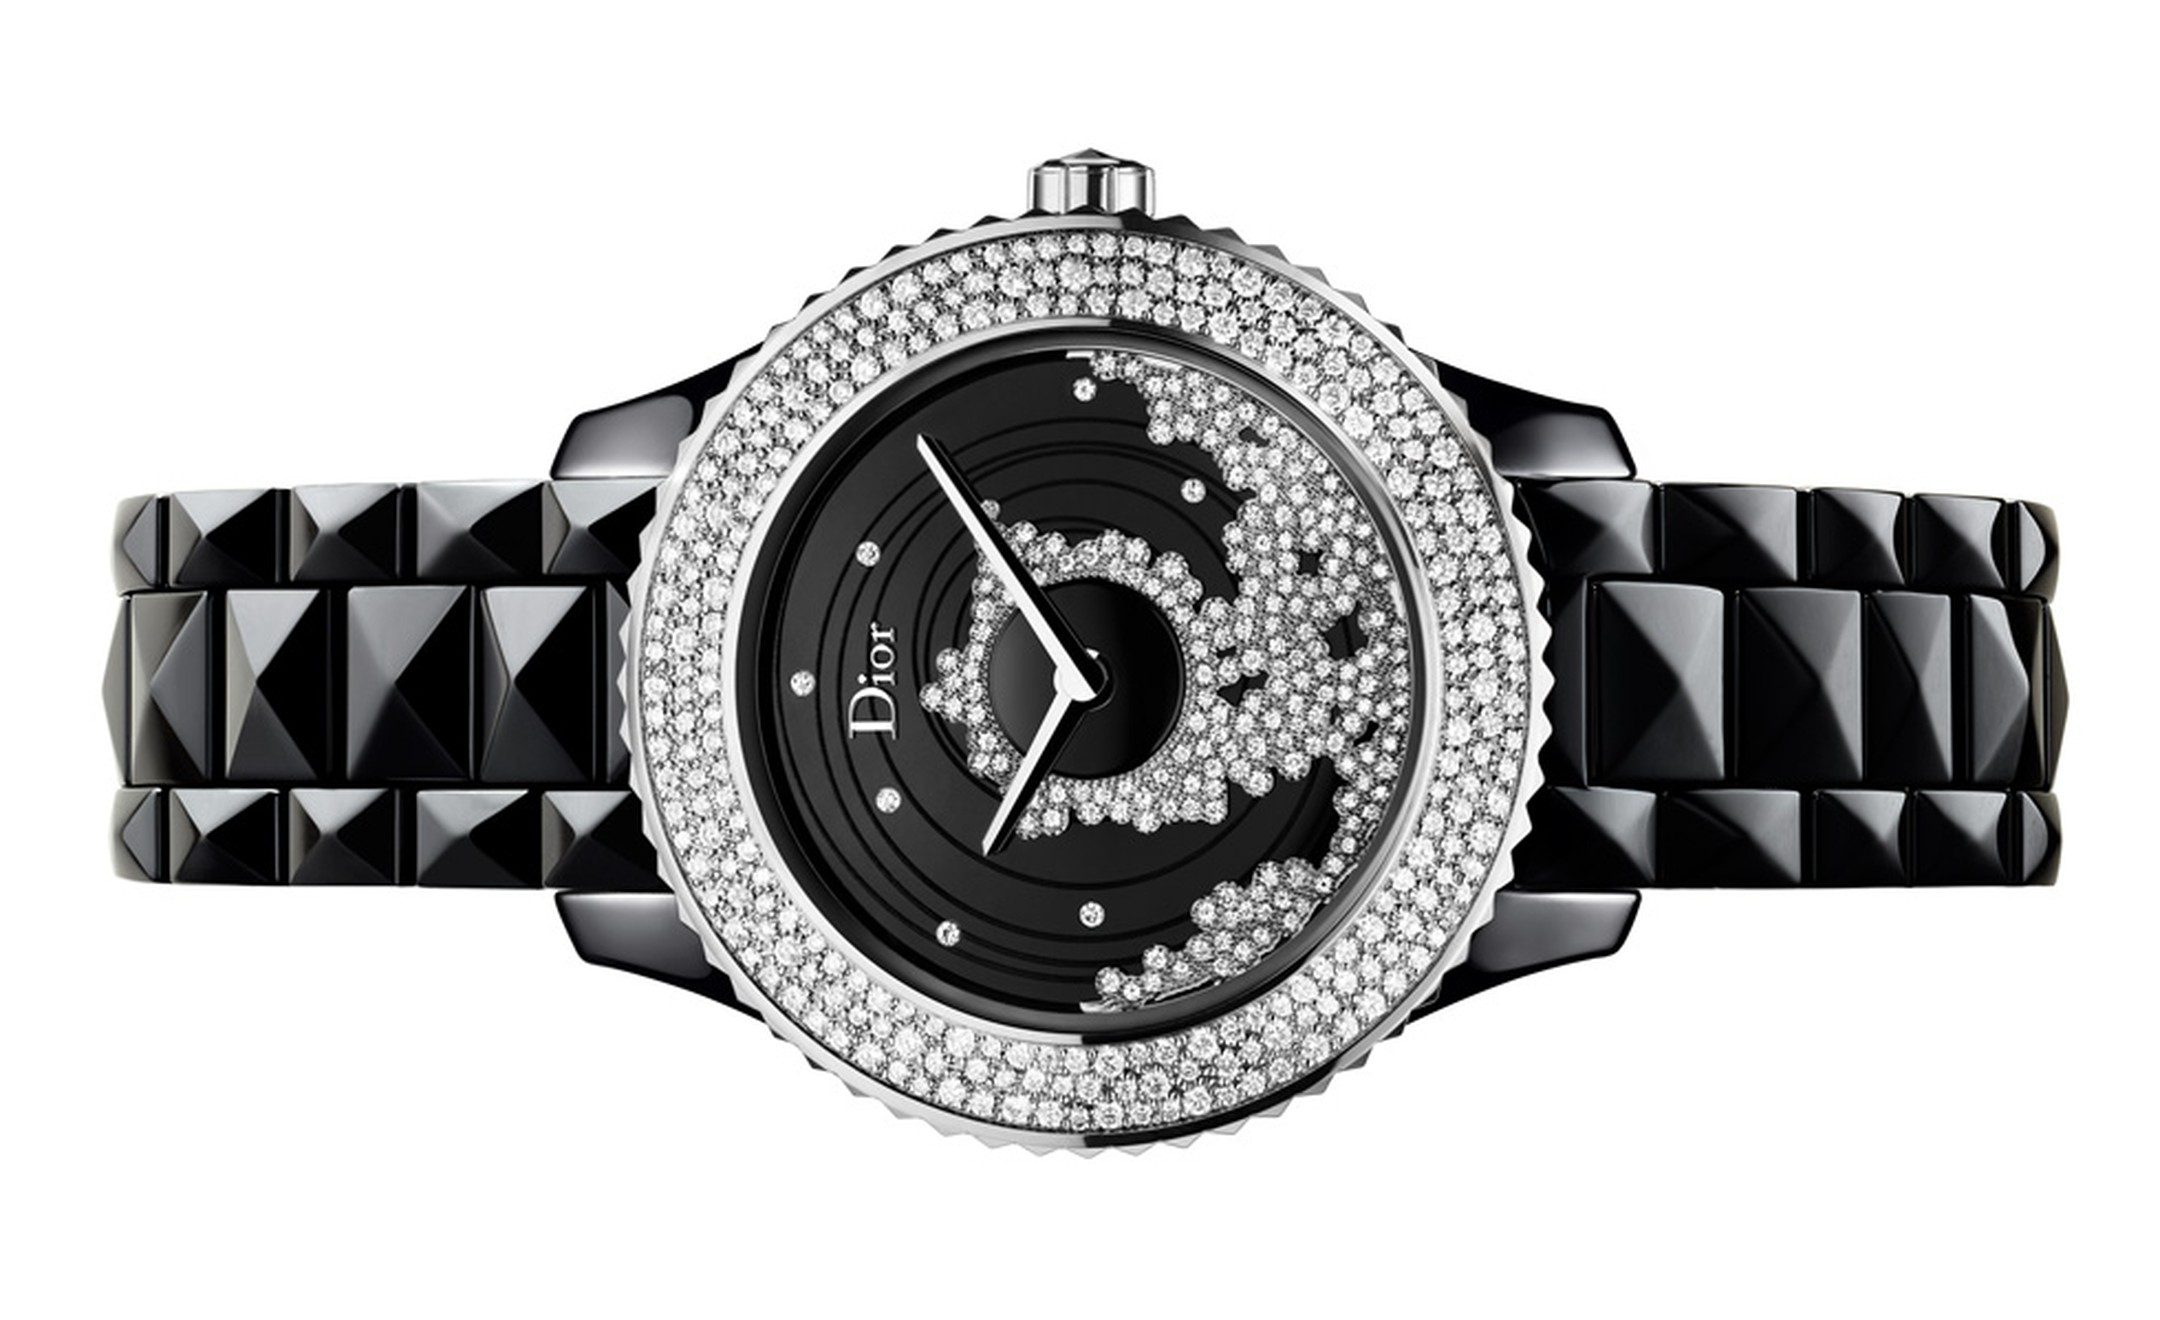 Dior VIII Grand Bal 4 watch with a diamond-set on the dial of the watch that twirls like a ball gown in motion. This automatic movement has been specially developed for Dior and features the rotor on the dial.